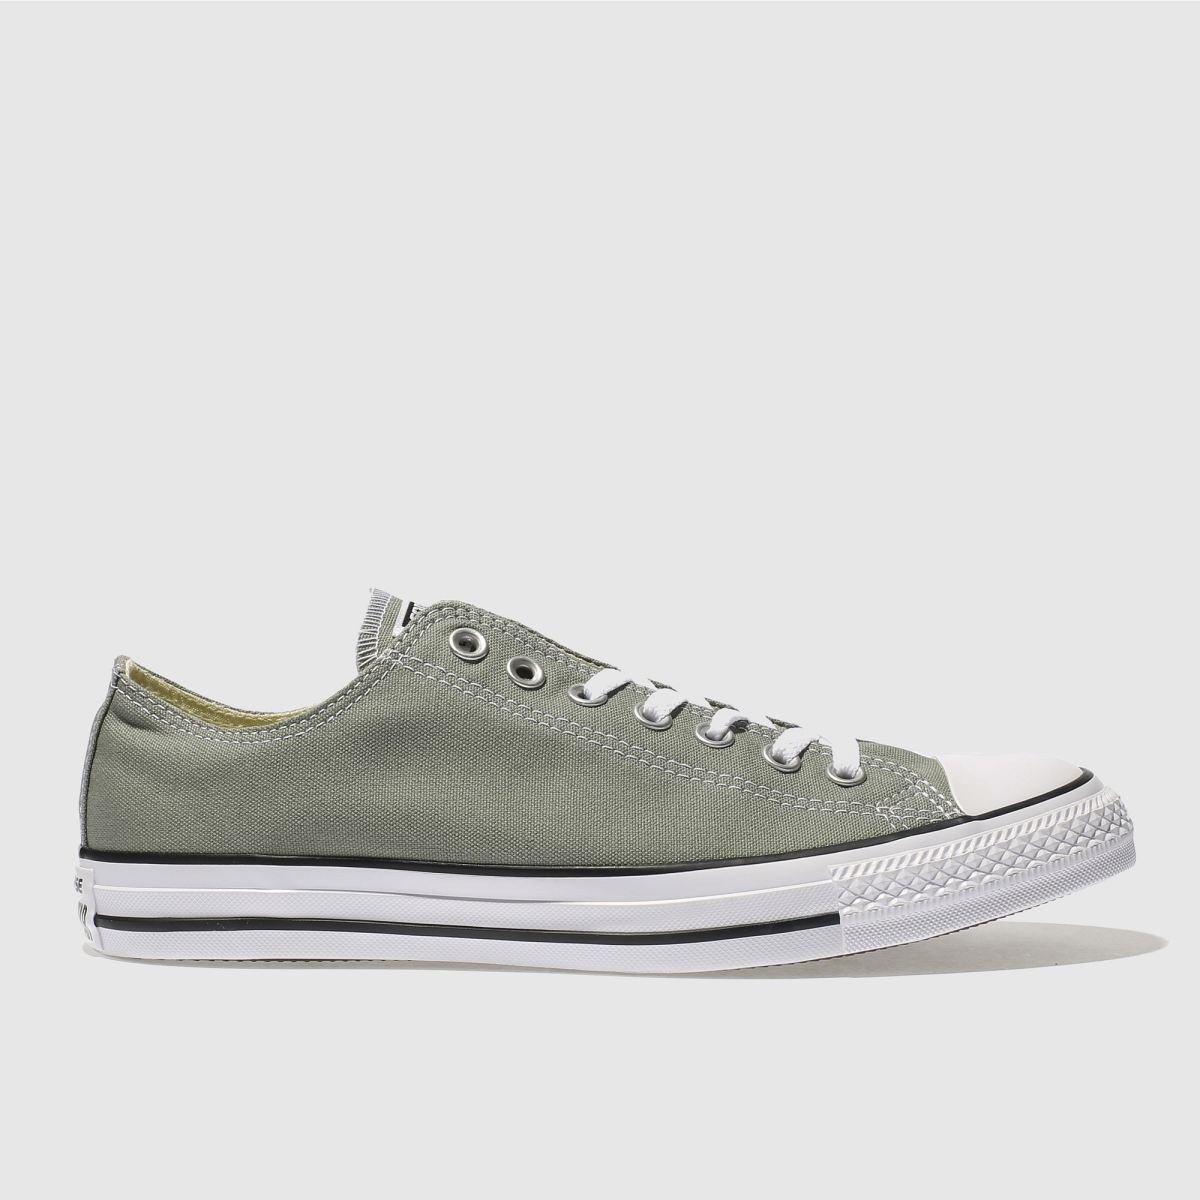 converse khaki chuck taylor all star ox trainers